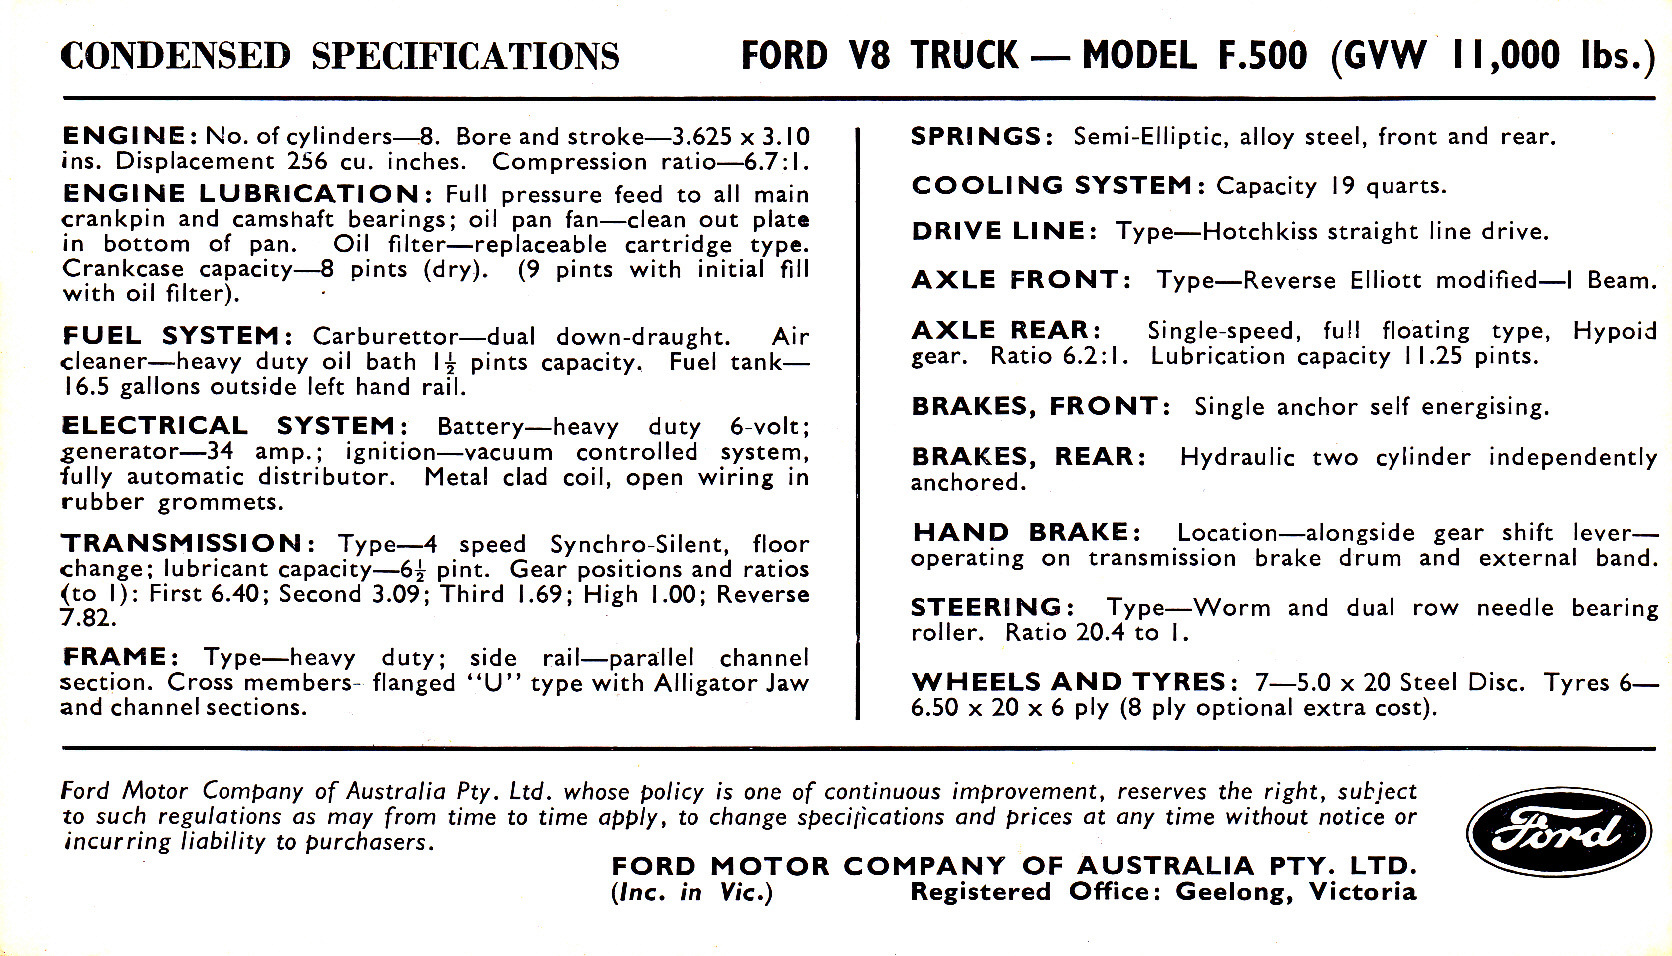 1955 Ford F100 Freighter Postcard Specifications Full Size Image